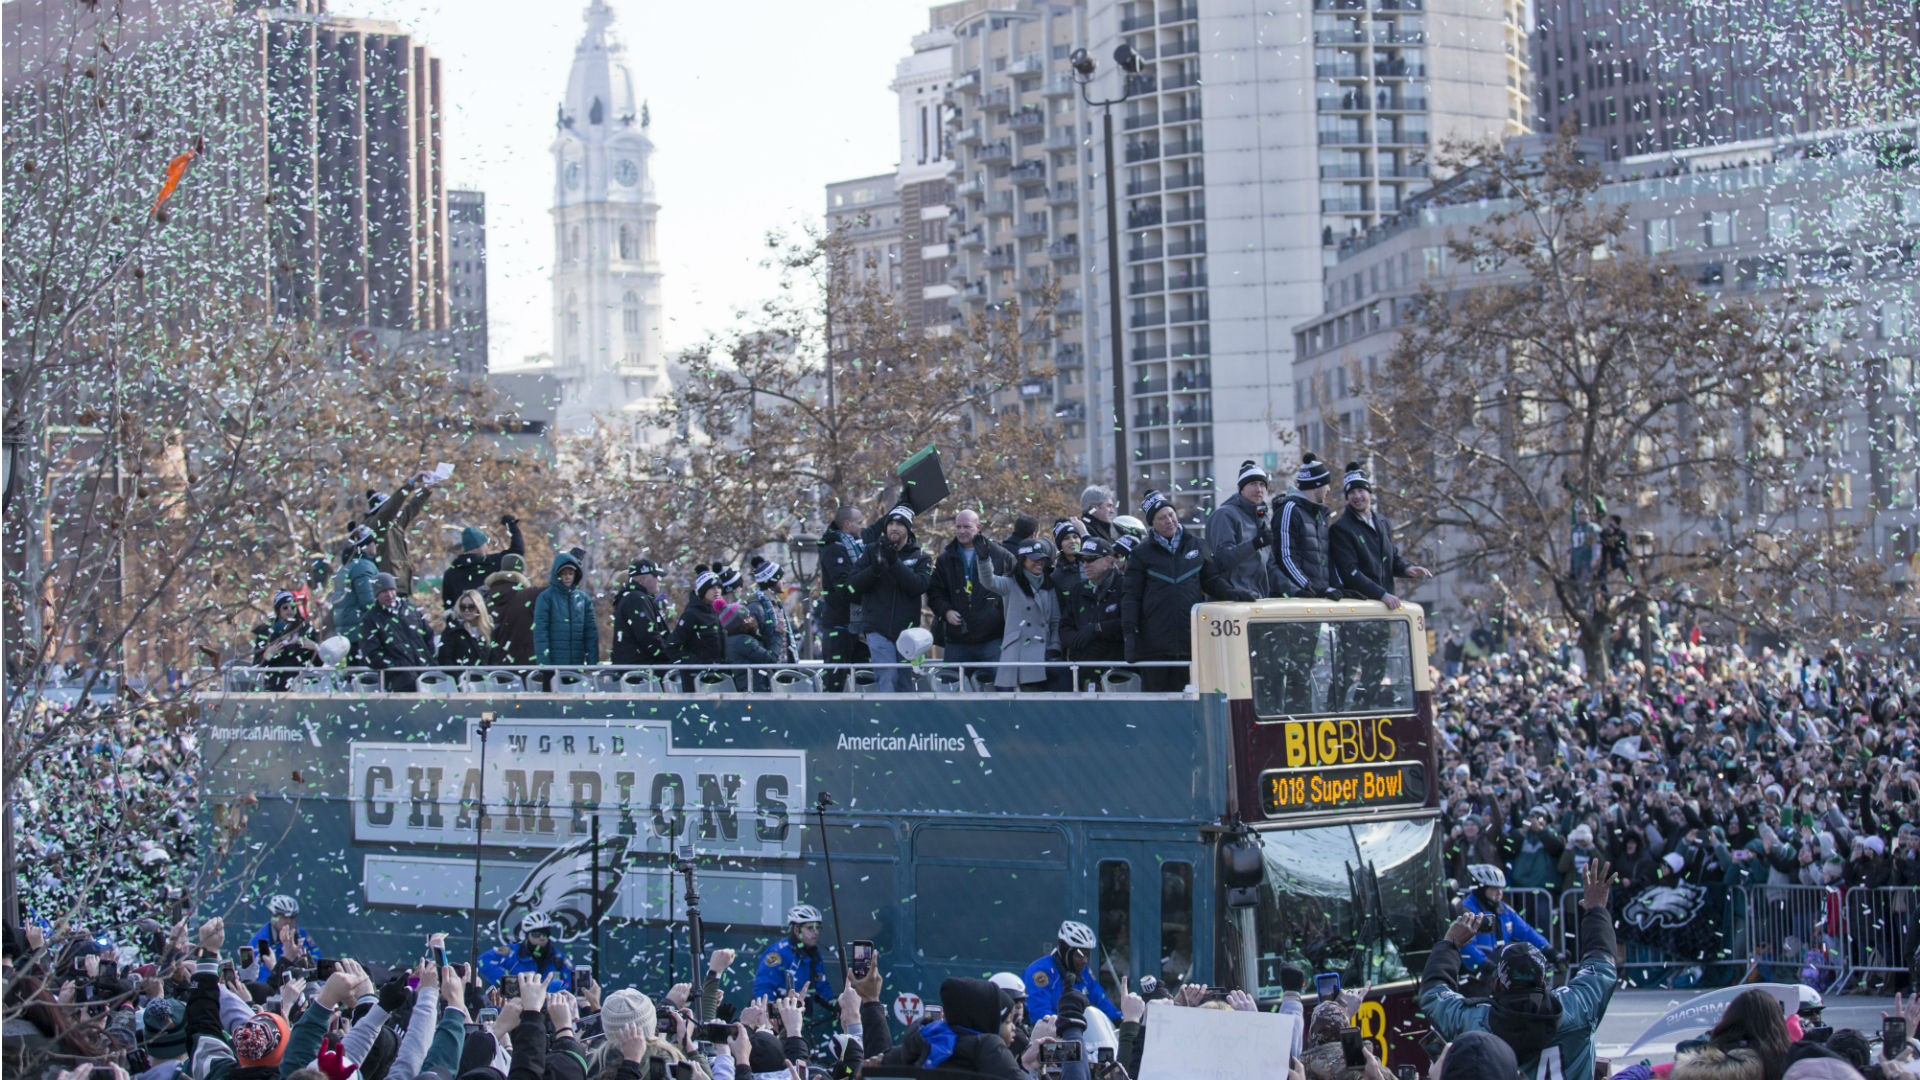 Scenes From The Eagles Super Bowl Parade In Philadelphia